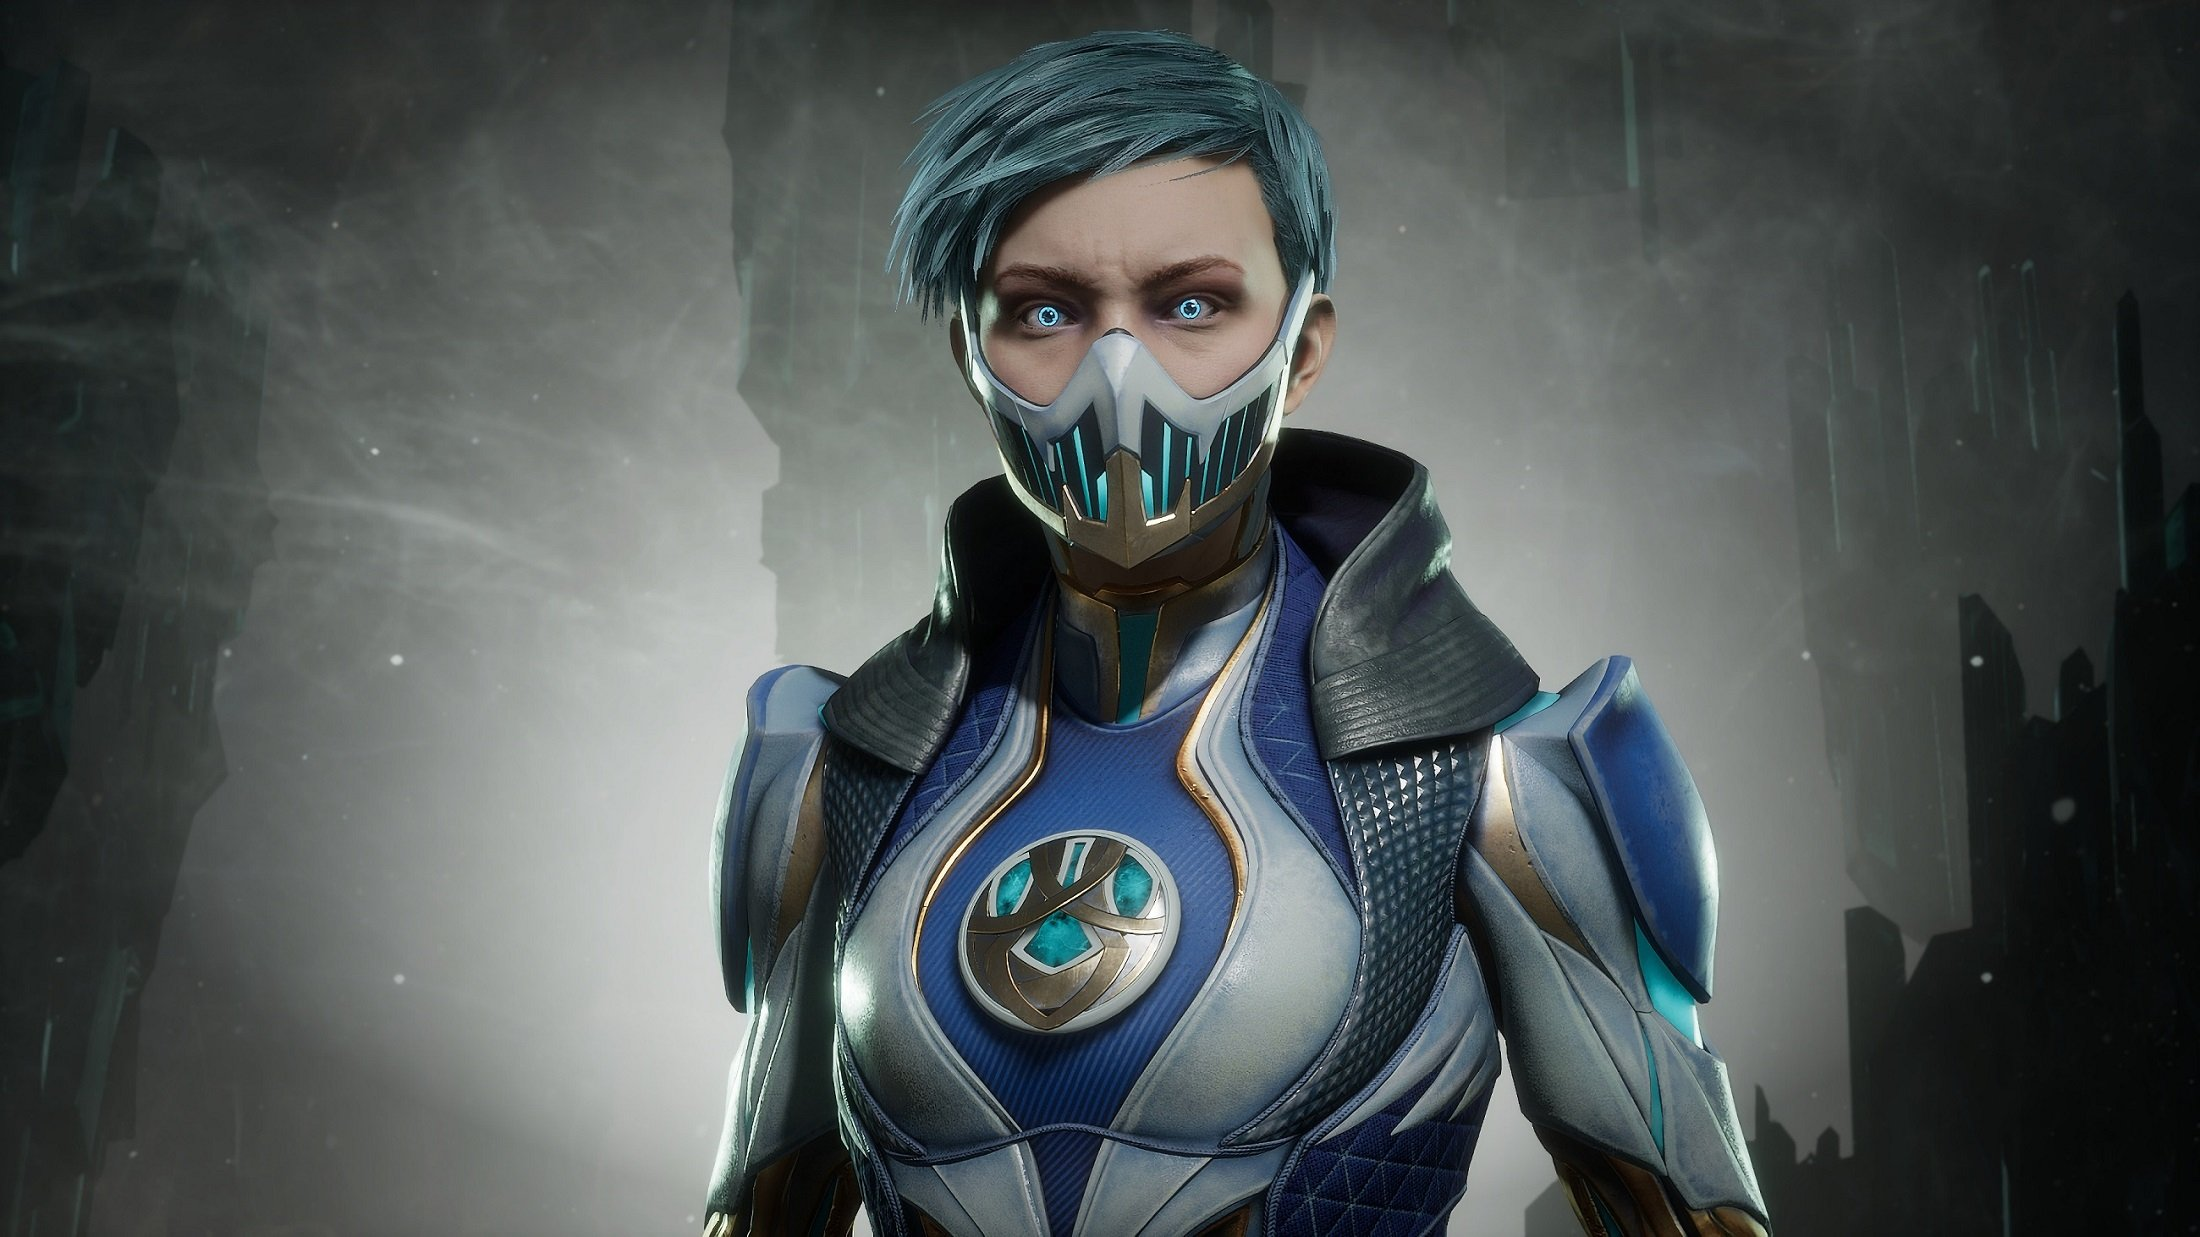 Creative Gaming And Cosplay Ppe Face Mask Ideas Allgamers